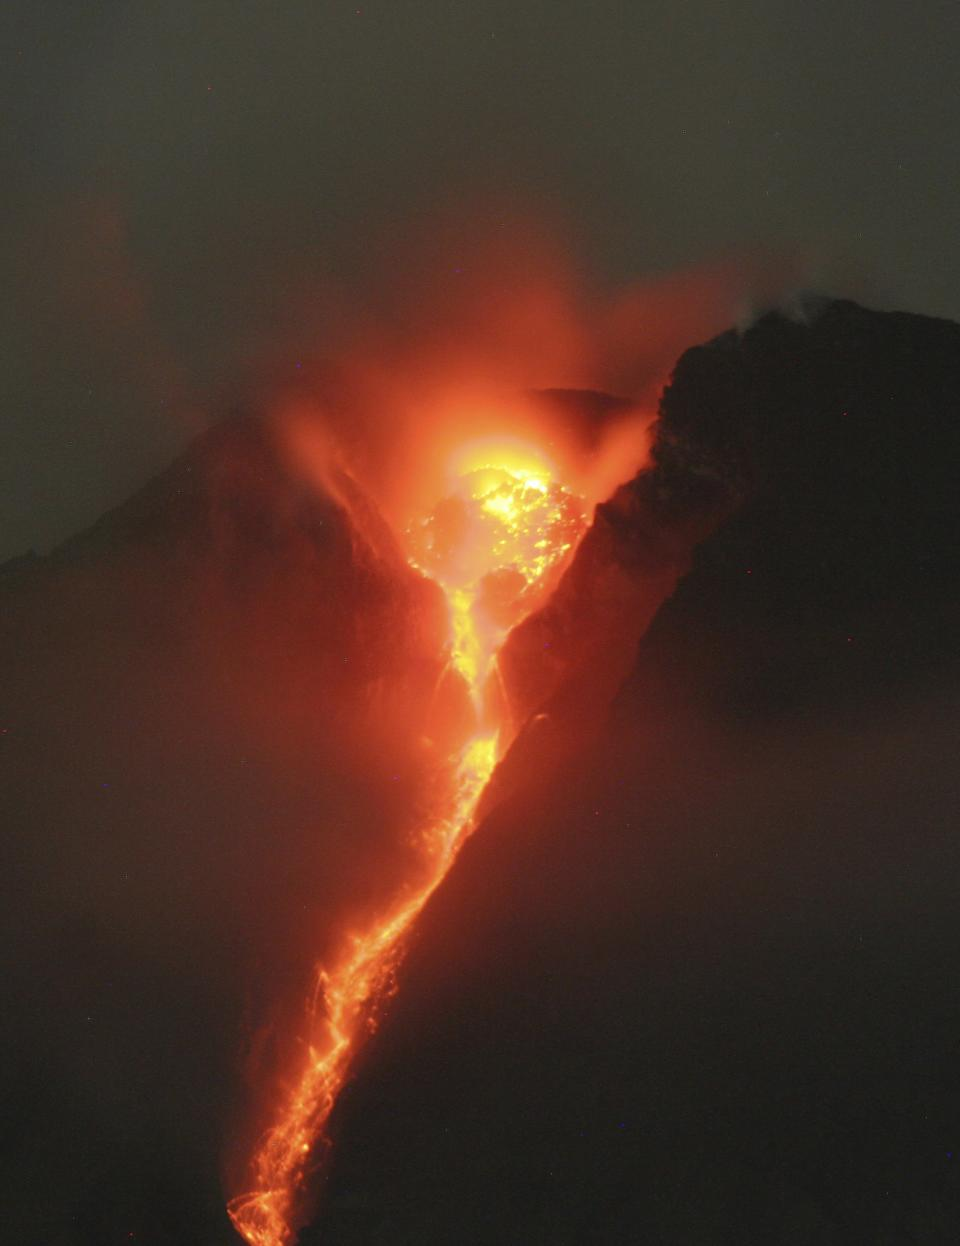 In this late Tuesday, Nov. 2, 2010 photo, lava glows at the crater of Mount Merapi as seen from Deles, Central Java, Indonesia. Indonesia's most dangerous volcano is once again sending searing gas clouds and burning rocks down its scorched flanks. (AP Photo/Binsar Bakkara)